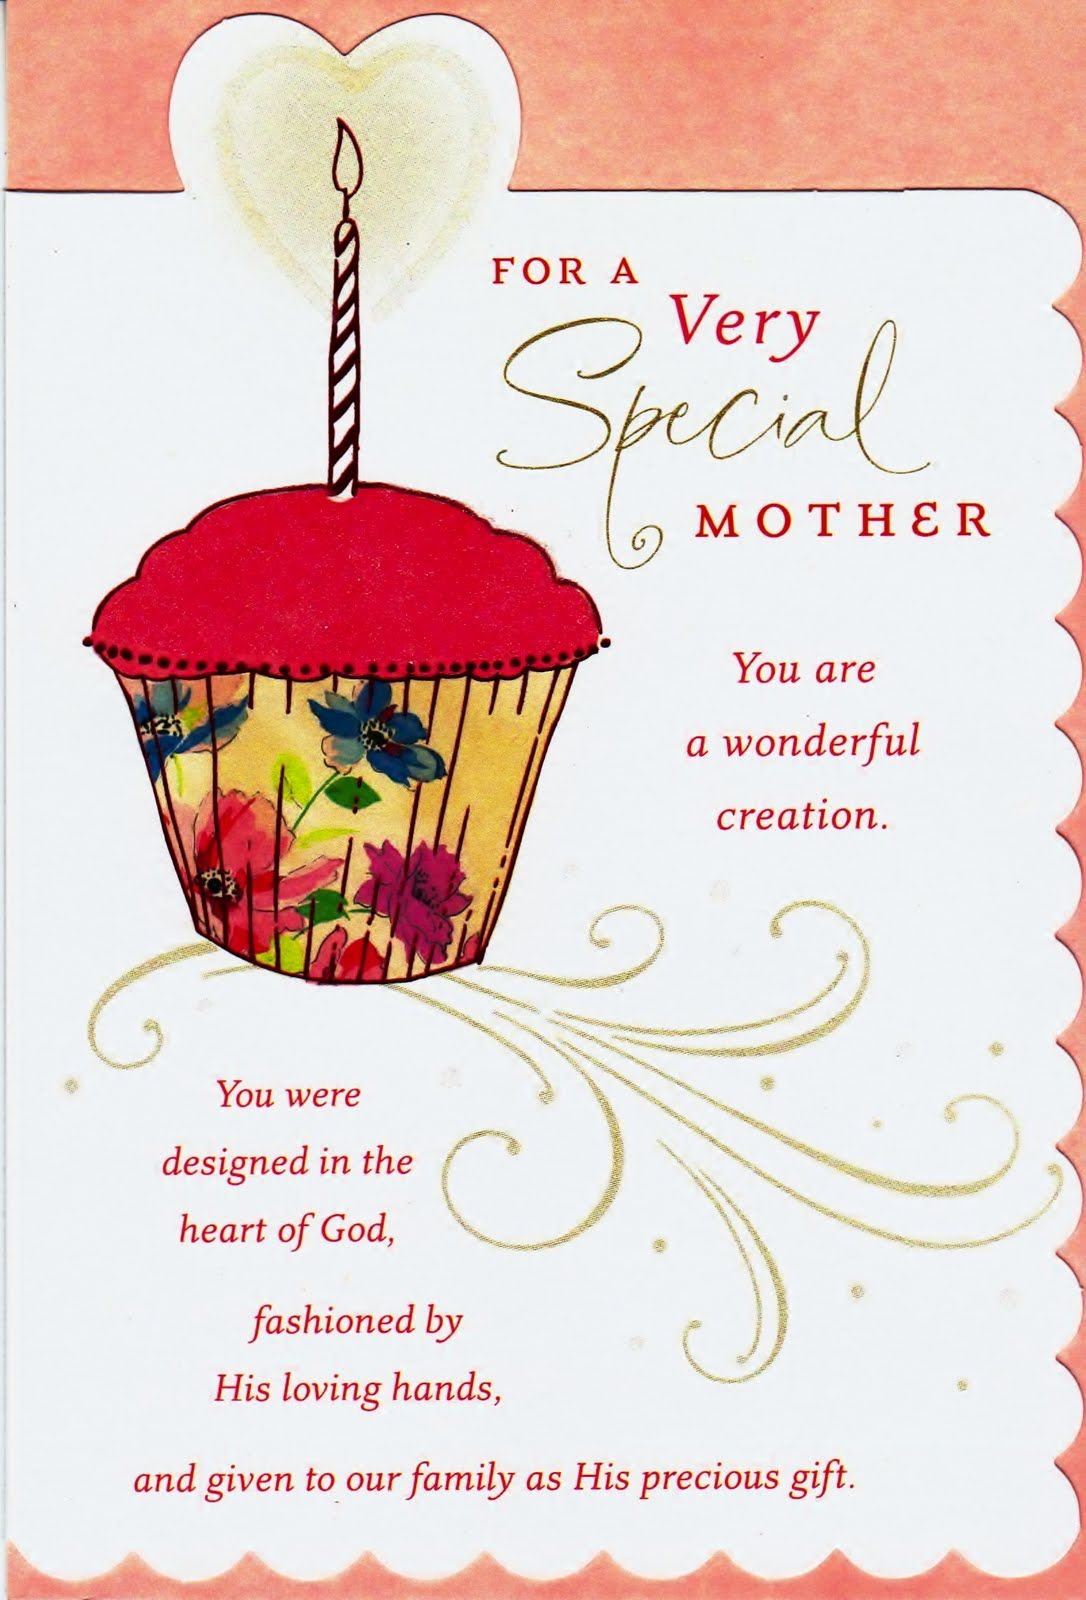 Happy Birthday Mom Free Large Images Bday Cards Pinterest